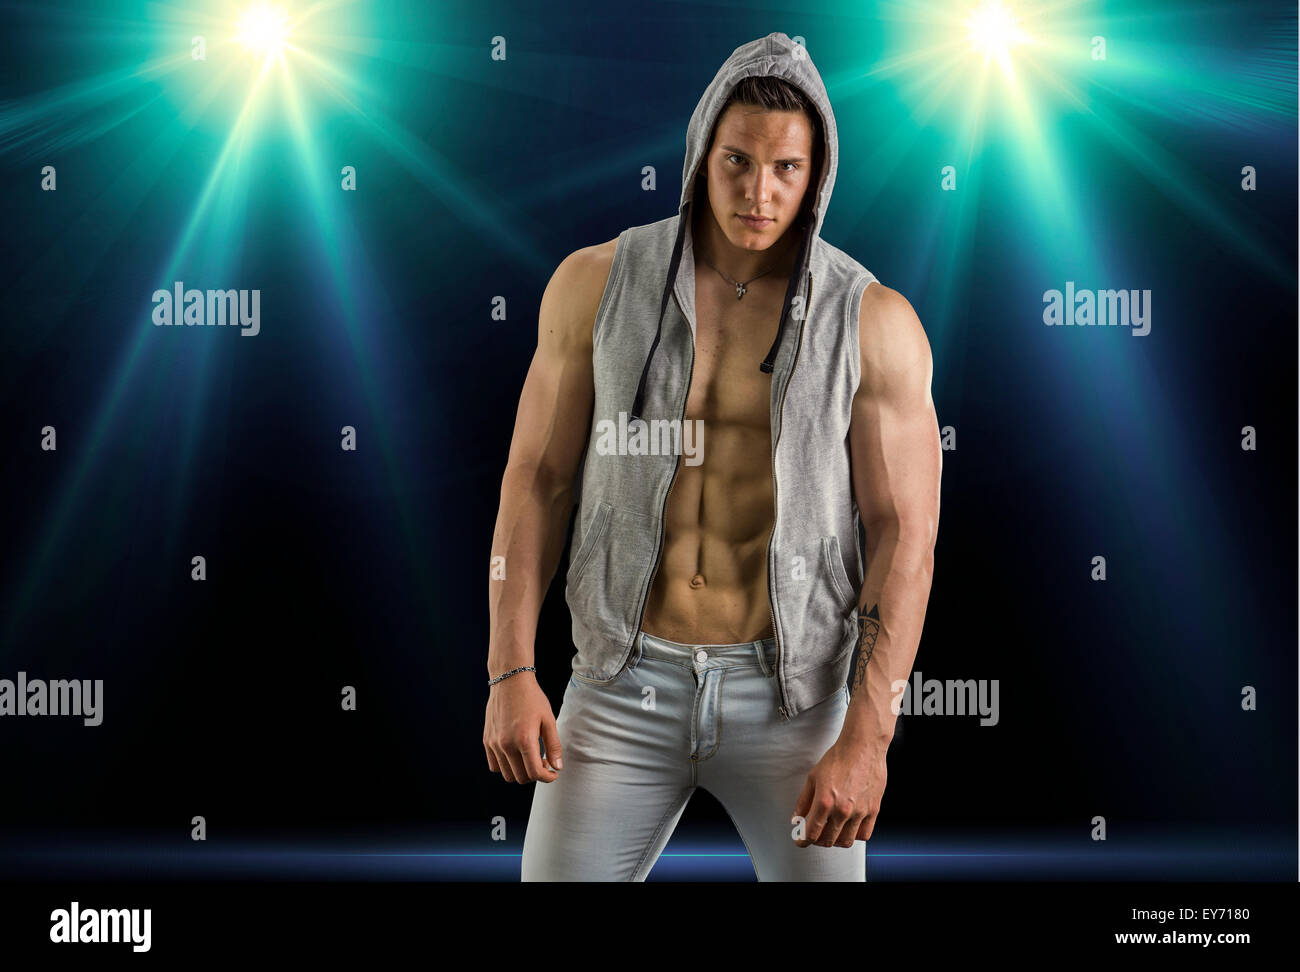 Confident, attractive young man with open vest on muscular torso, ripped abs and pecs. On dark background with spotlights - Stock Image